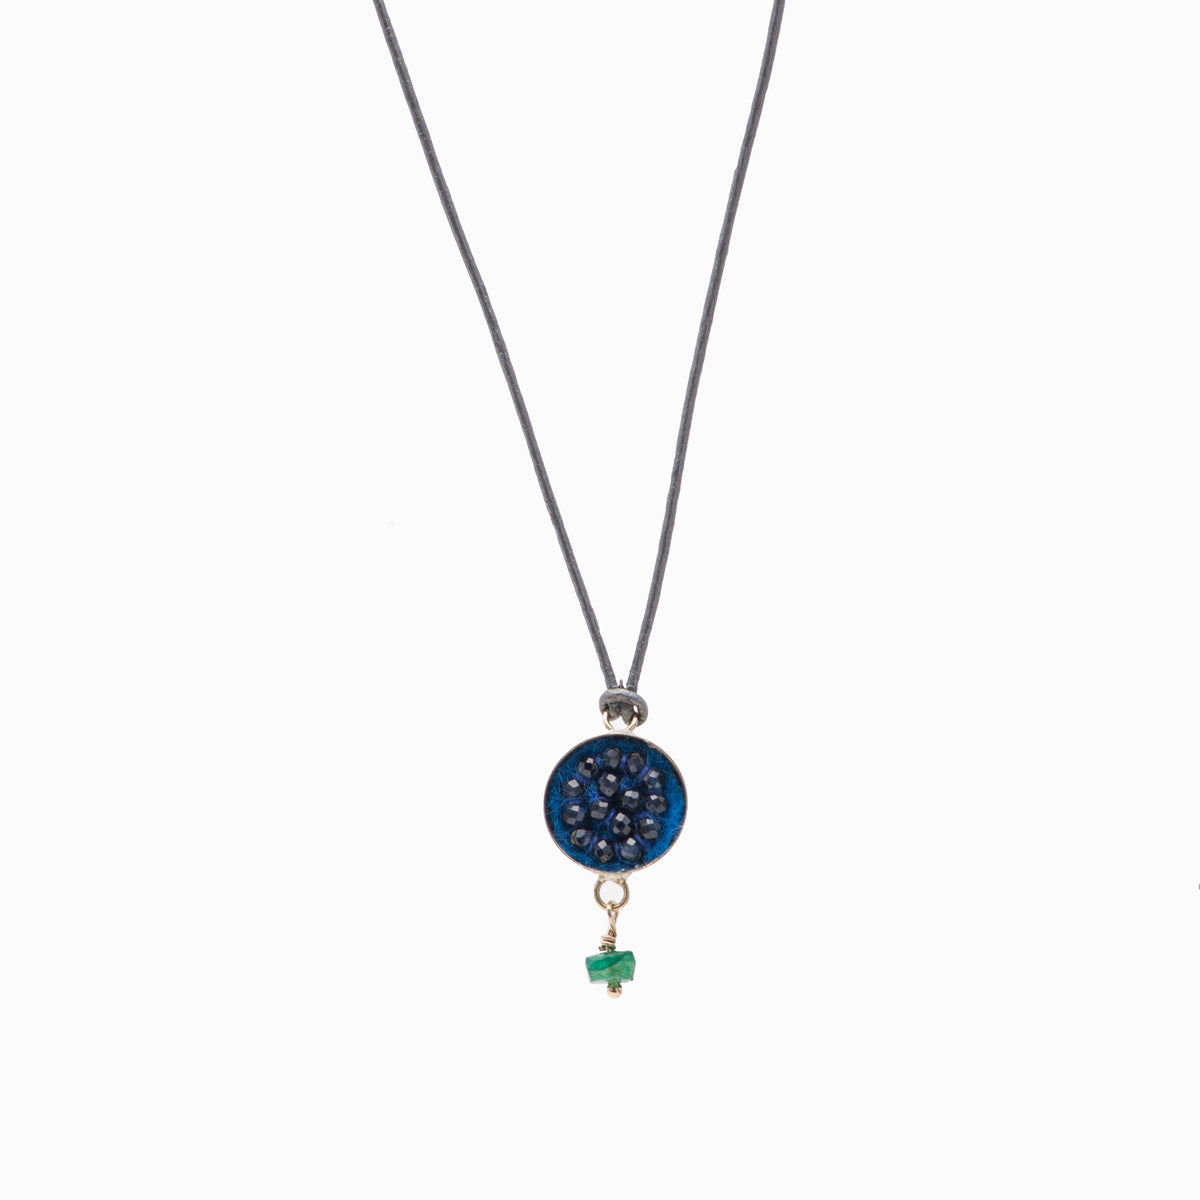 Moxie Blue Sapphire Necklace/Bracelet Wrap with Faceted Emerald Dangle on Greek Leather